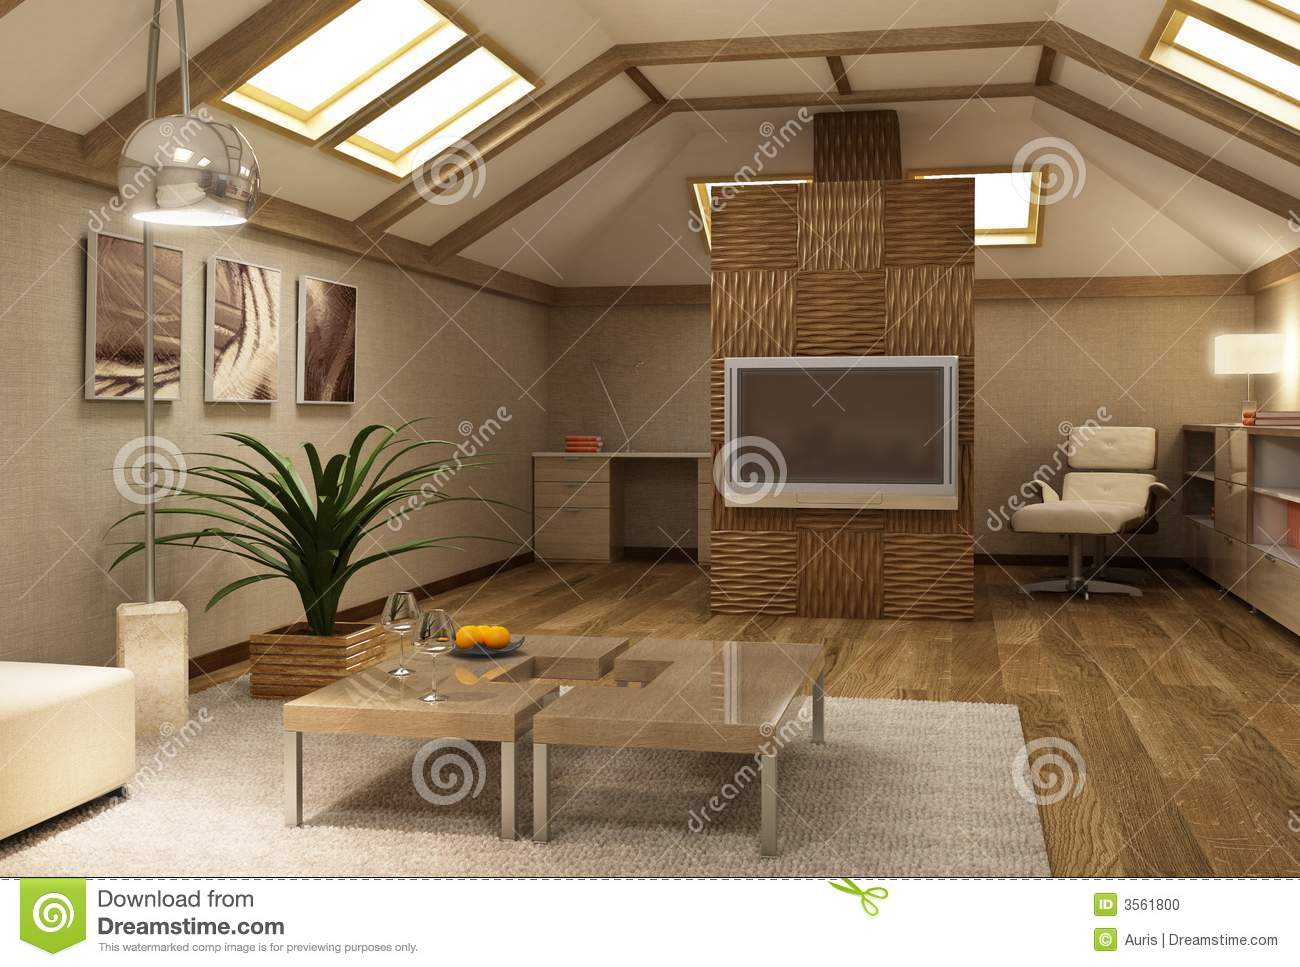 Rmodern Mezzanine Interior 3d Stock Photo Image Of